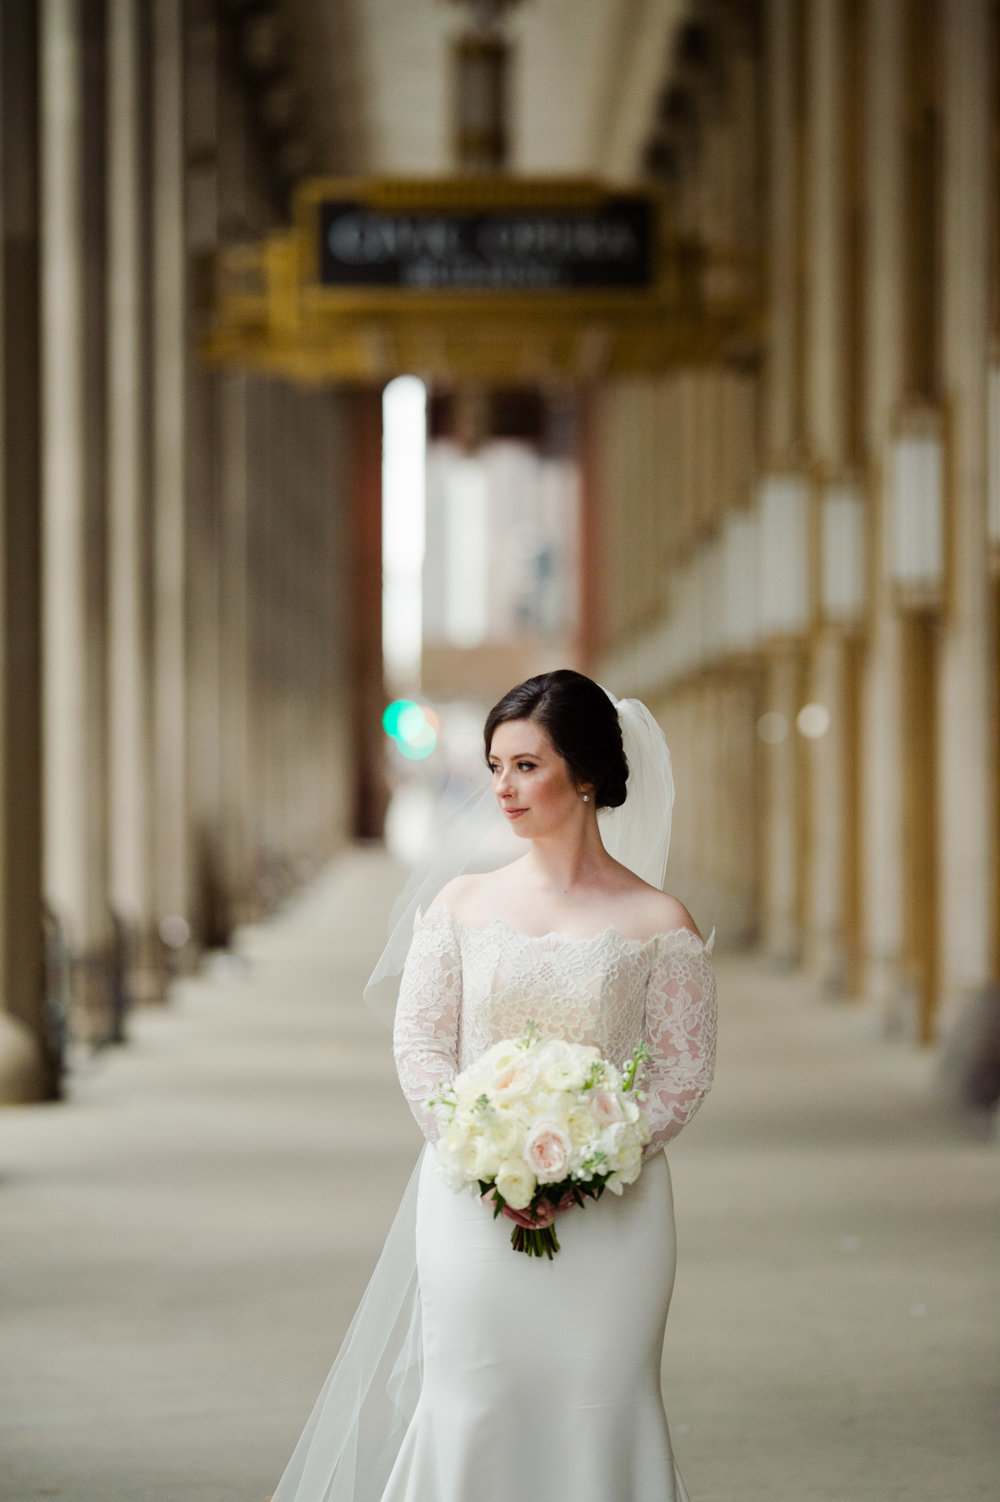 Elegant bridal portrait at Lyric Opera Chicago